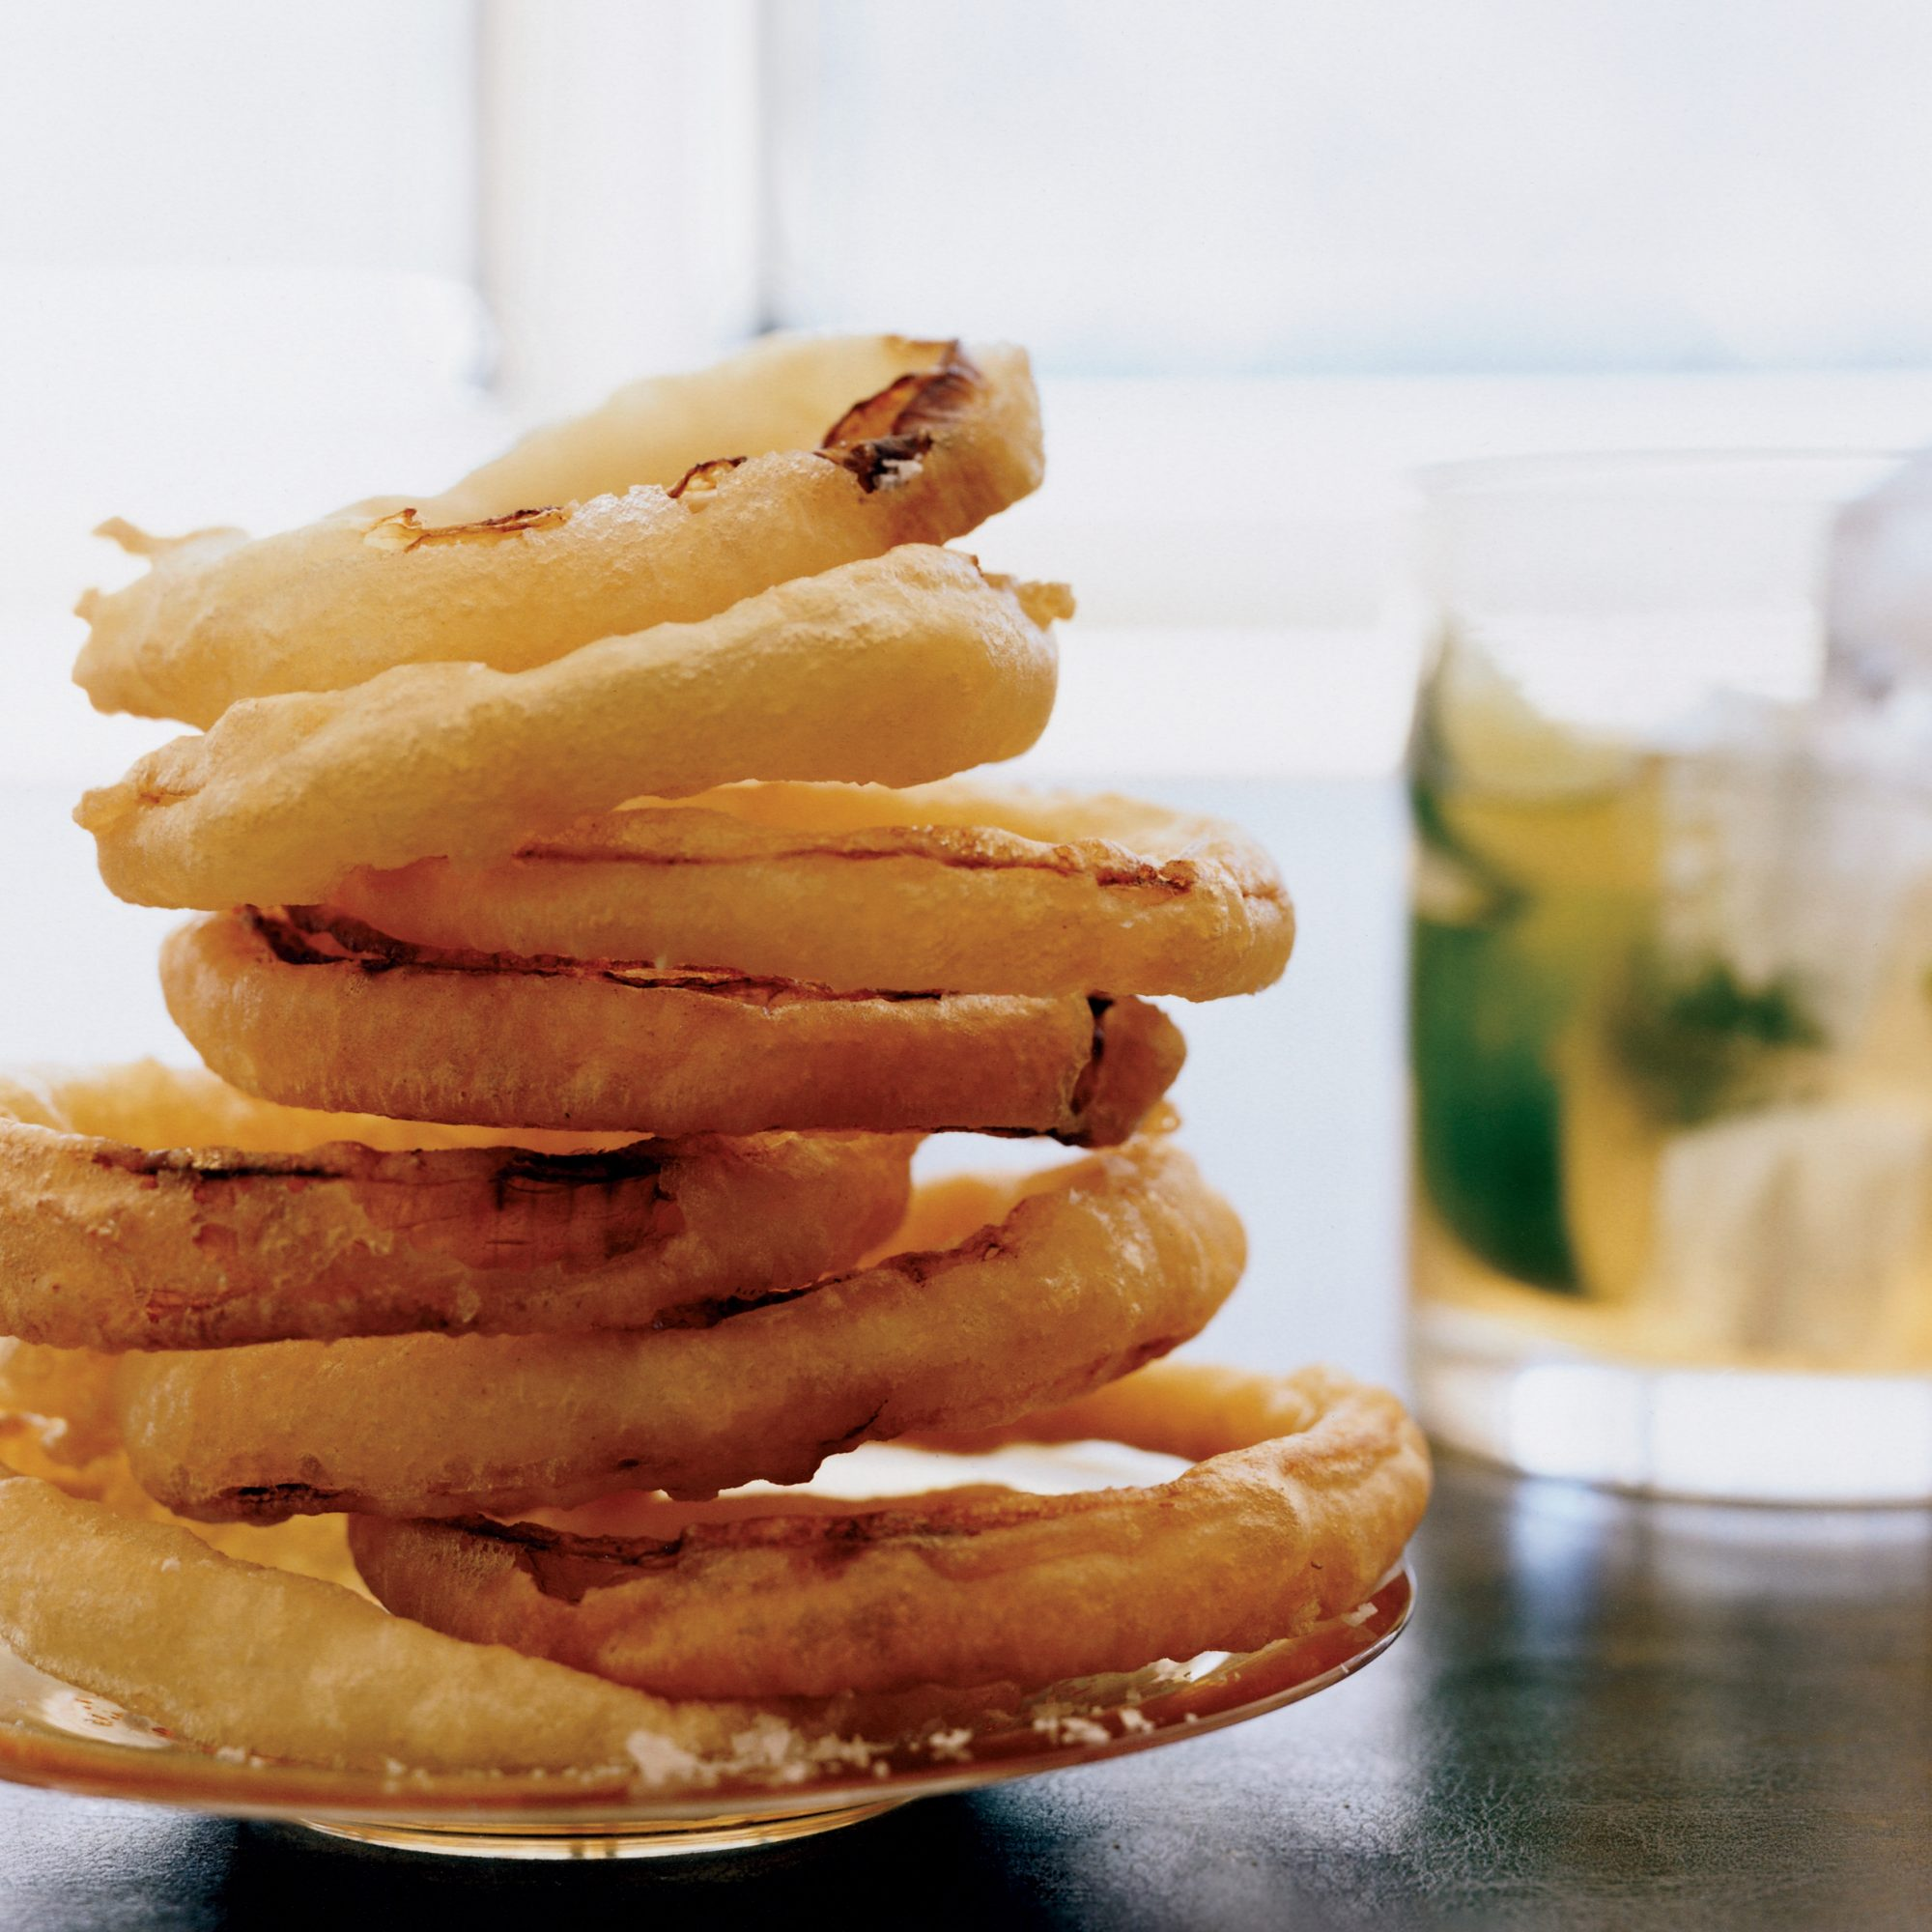 200809-r-crispy-onion-rings.jpg